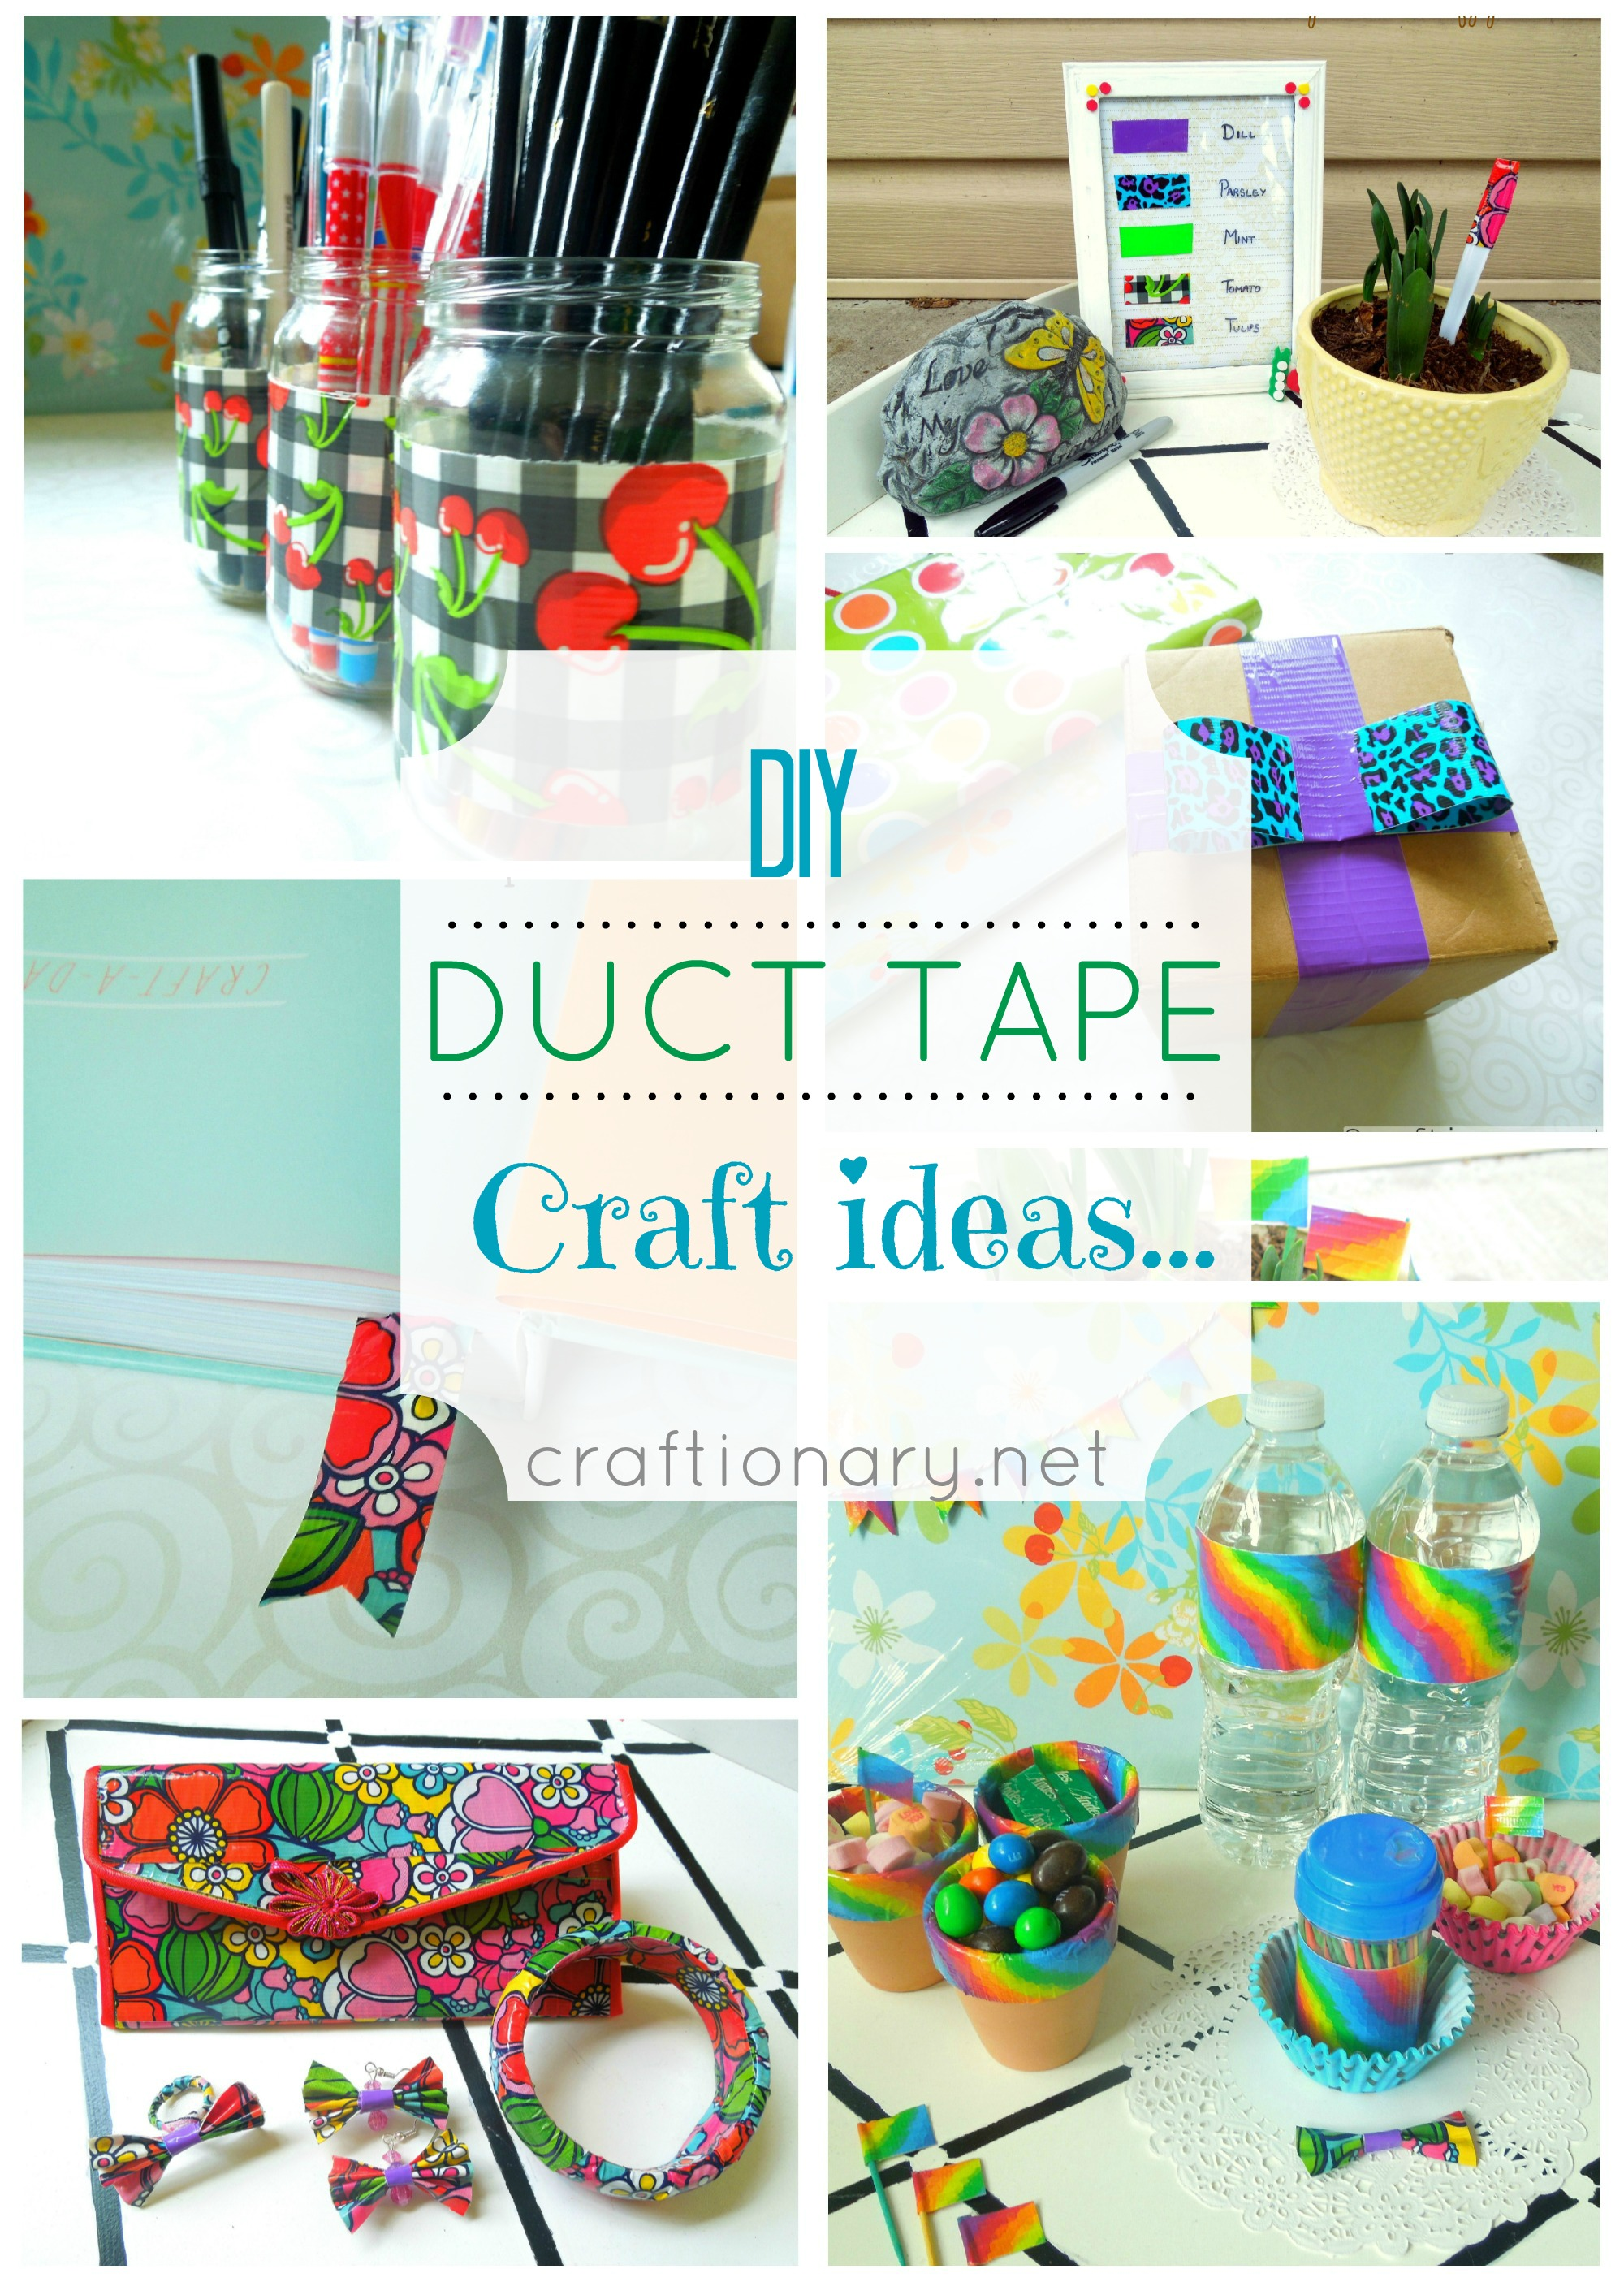 At Duct Tape Crafts - We provide you new and easy DIY duct tape projects and tutorials. DIY duct tape wallet, duct tape flowers, dress and uses ideas.